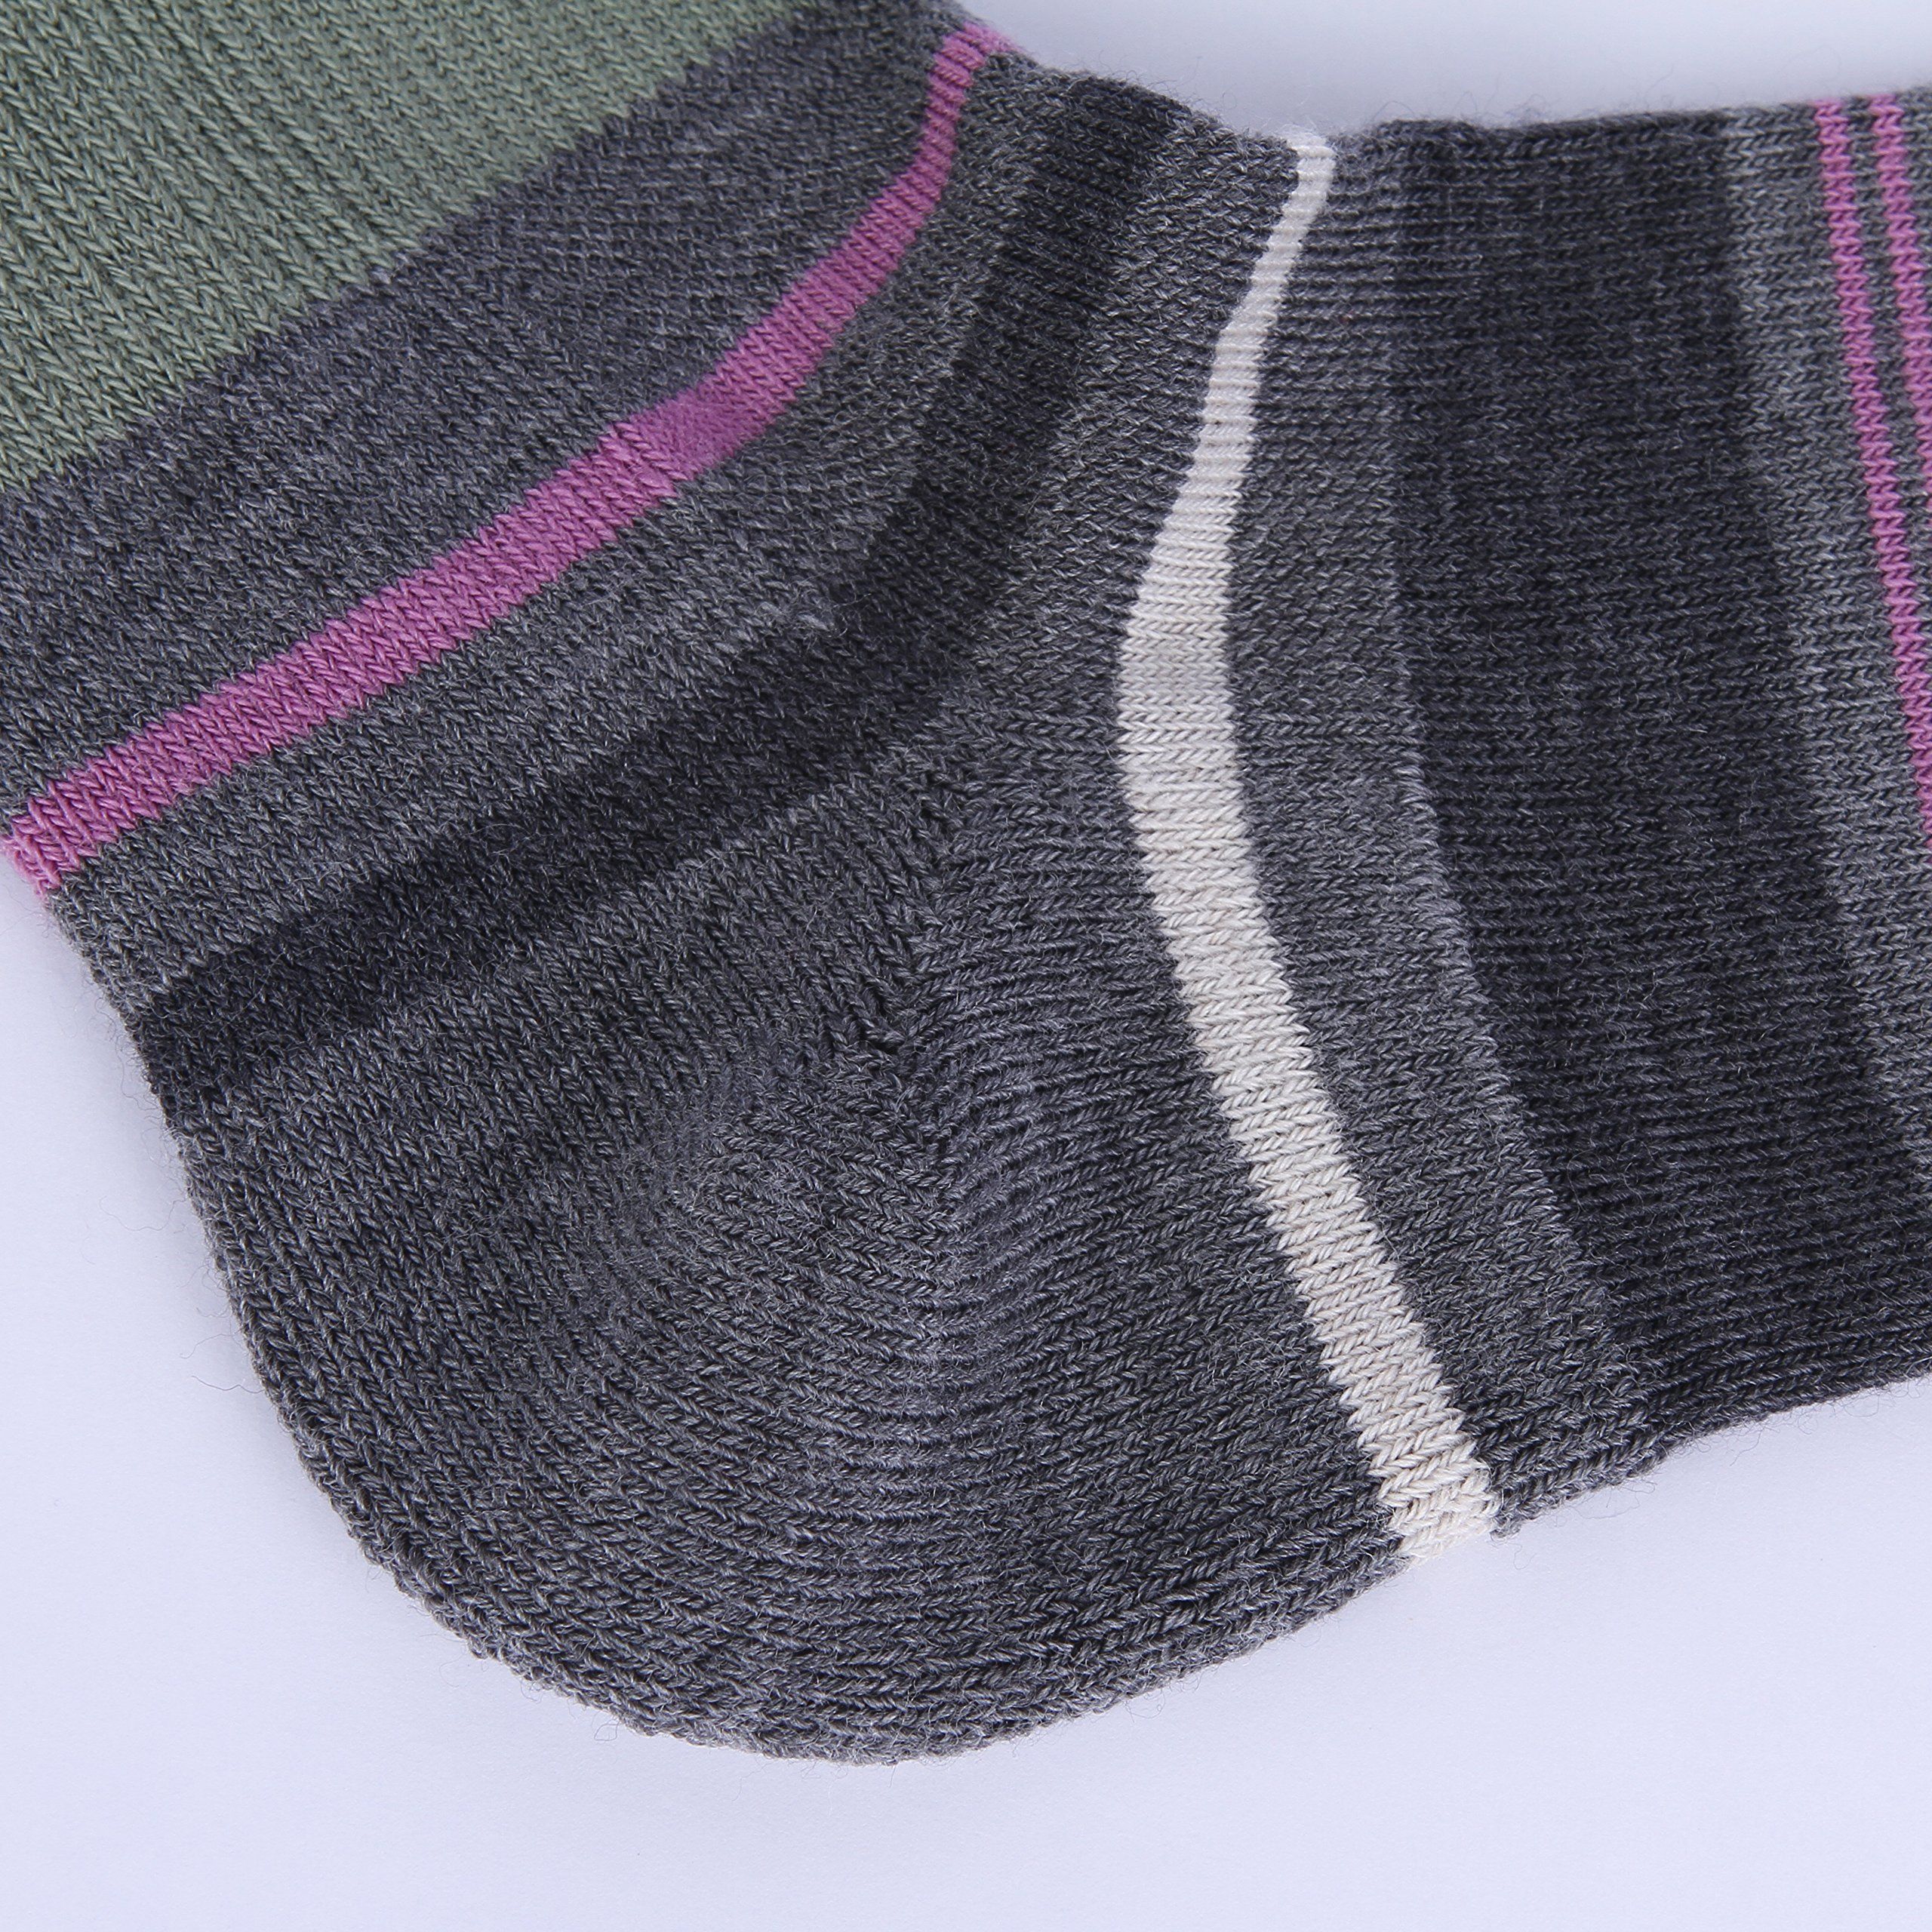 Enerwear 4 Pack Women's Merino Wool Outdoor Hiking Trail Crew Sock (US Shoe Size 4-10½, Violet/Gray/Multi) by Enerwear (Image #6)